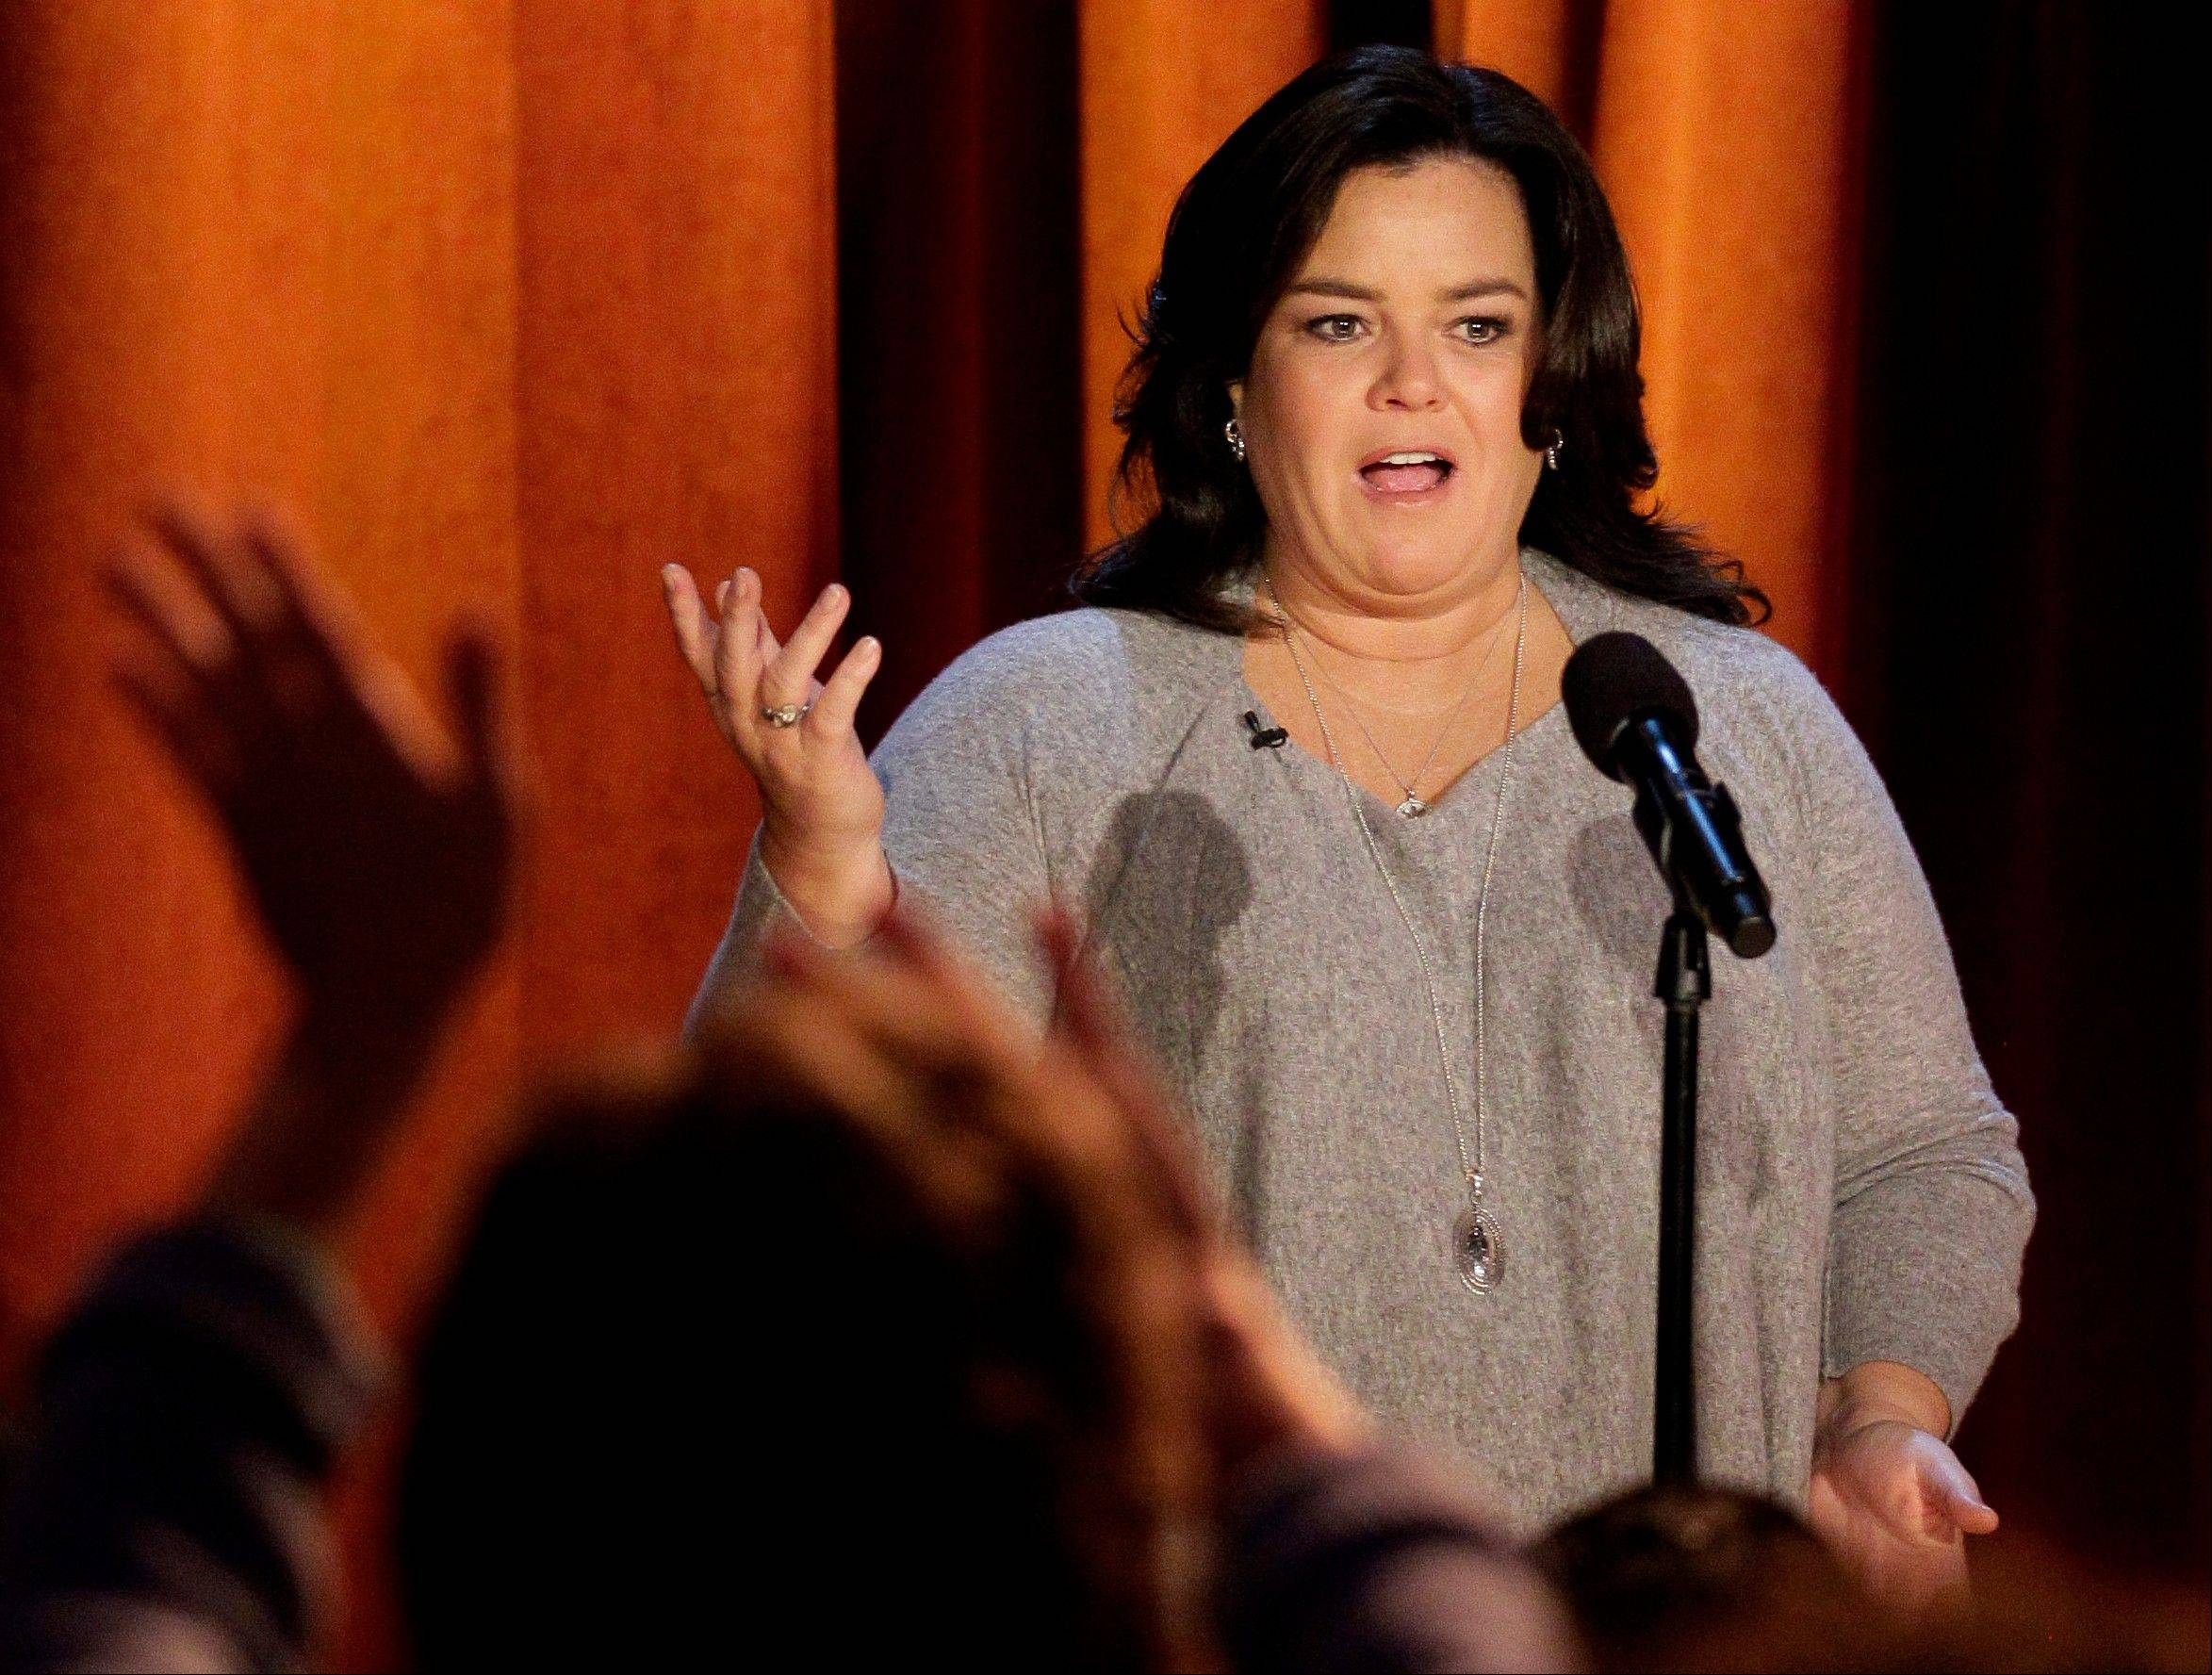 """The View"" announced Monday that Rosie O'Donnell will be a guest on the daytime gabfest on Feb. 7."